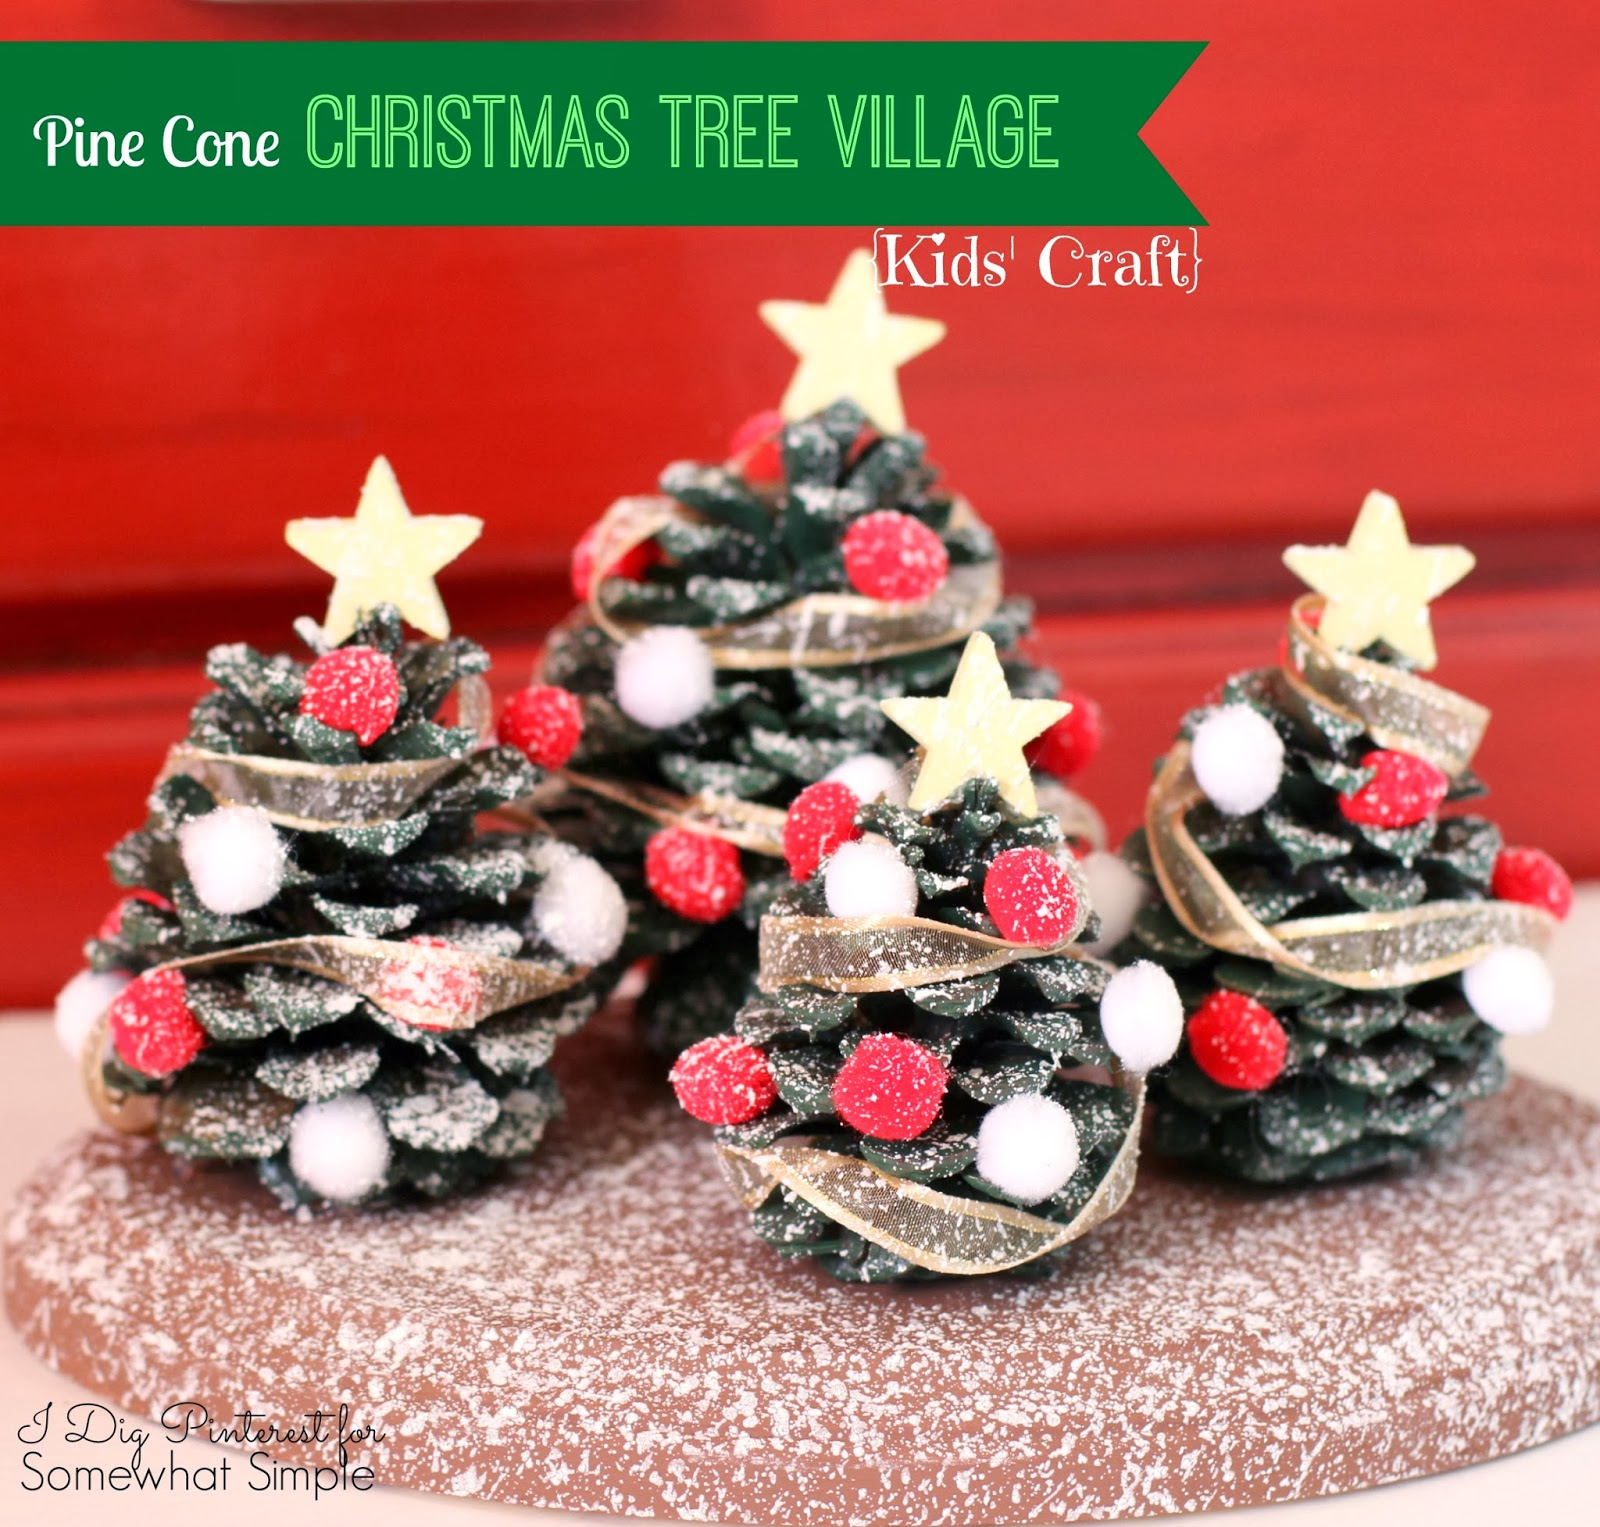 Pine Cone Christmas Ornaments To Make.Kids Craft Pine Cone Christmas Tree Village Decoration I